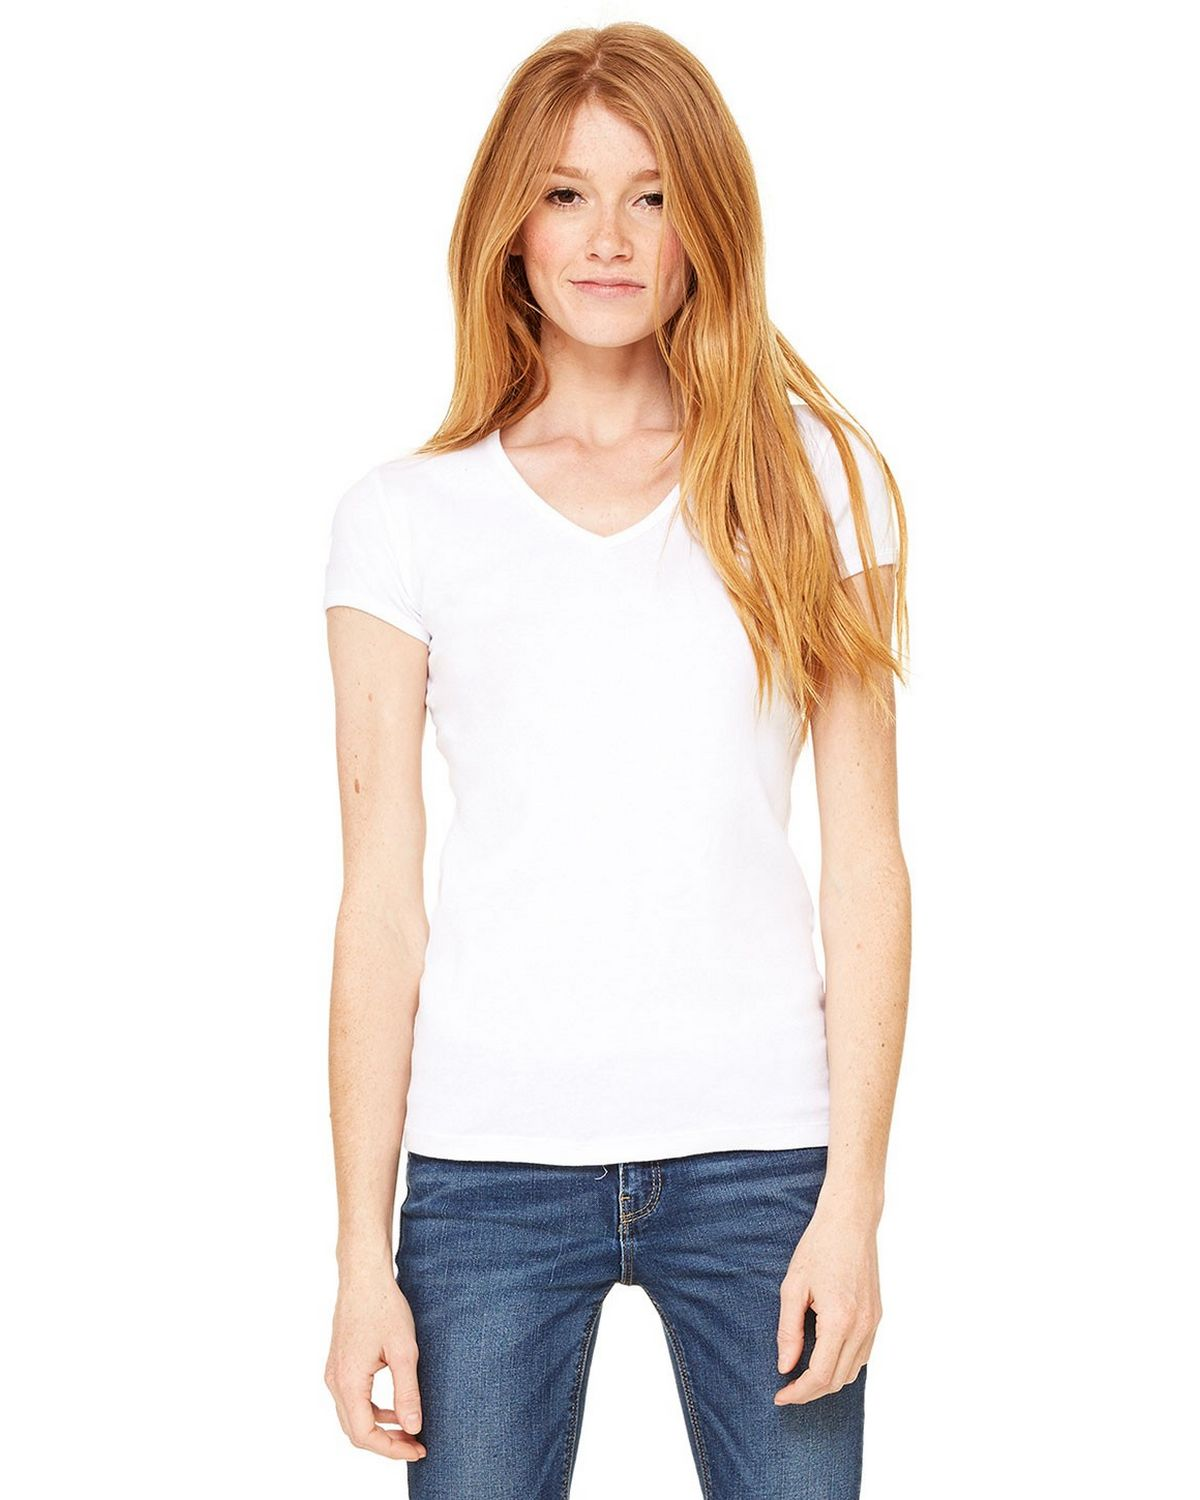 Bella + Canvas 1005 Ladies Stretch Rib V-Neck T-Shirt - White - S 1005